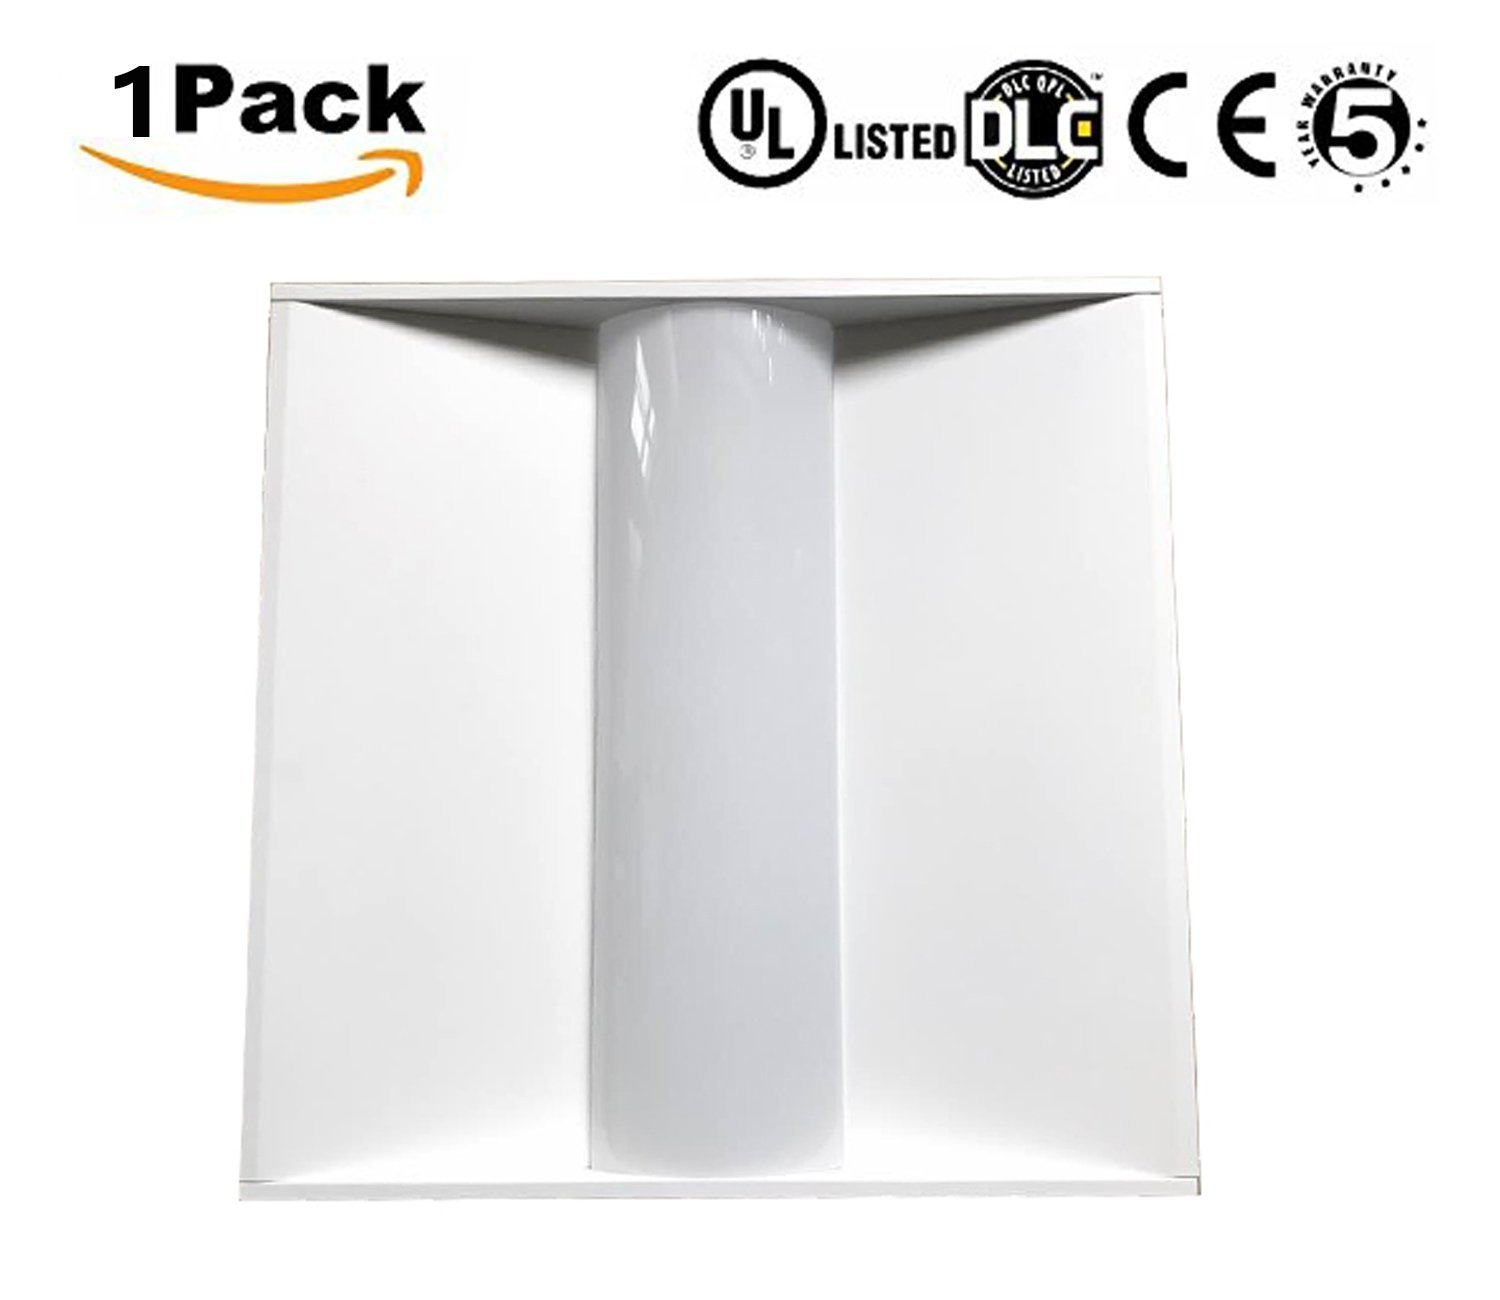 LED Troffer Light Fixture, Jimwhen 2x2 FT Volumetric Troffer, 30W Architectural Troffer,4000K Cool White,0-10V Dimmable,Metal Commercial Drop Ceiling Light for Office, School